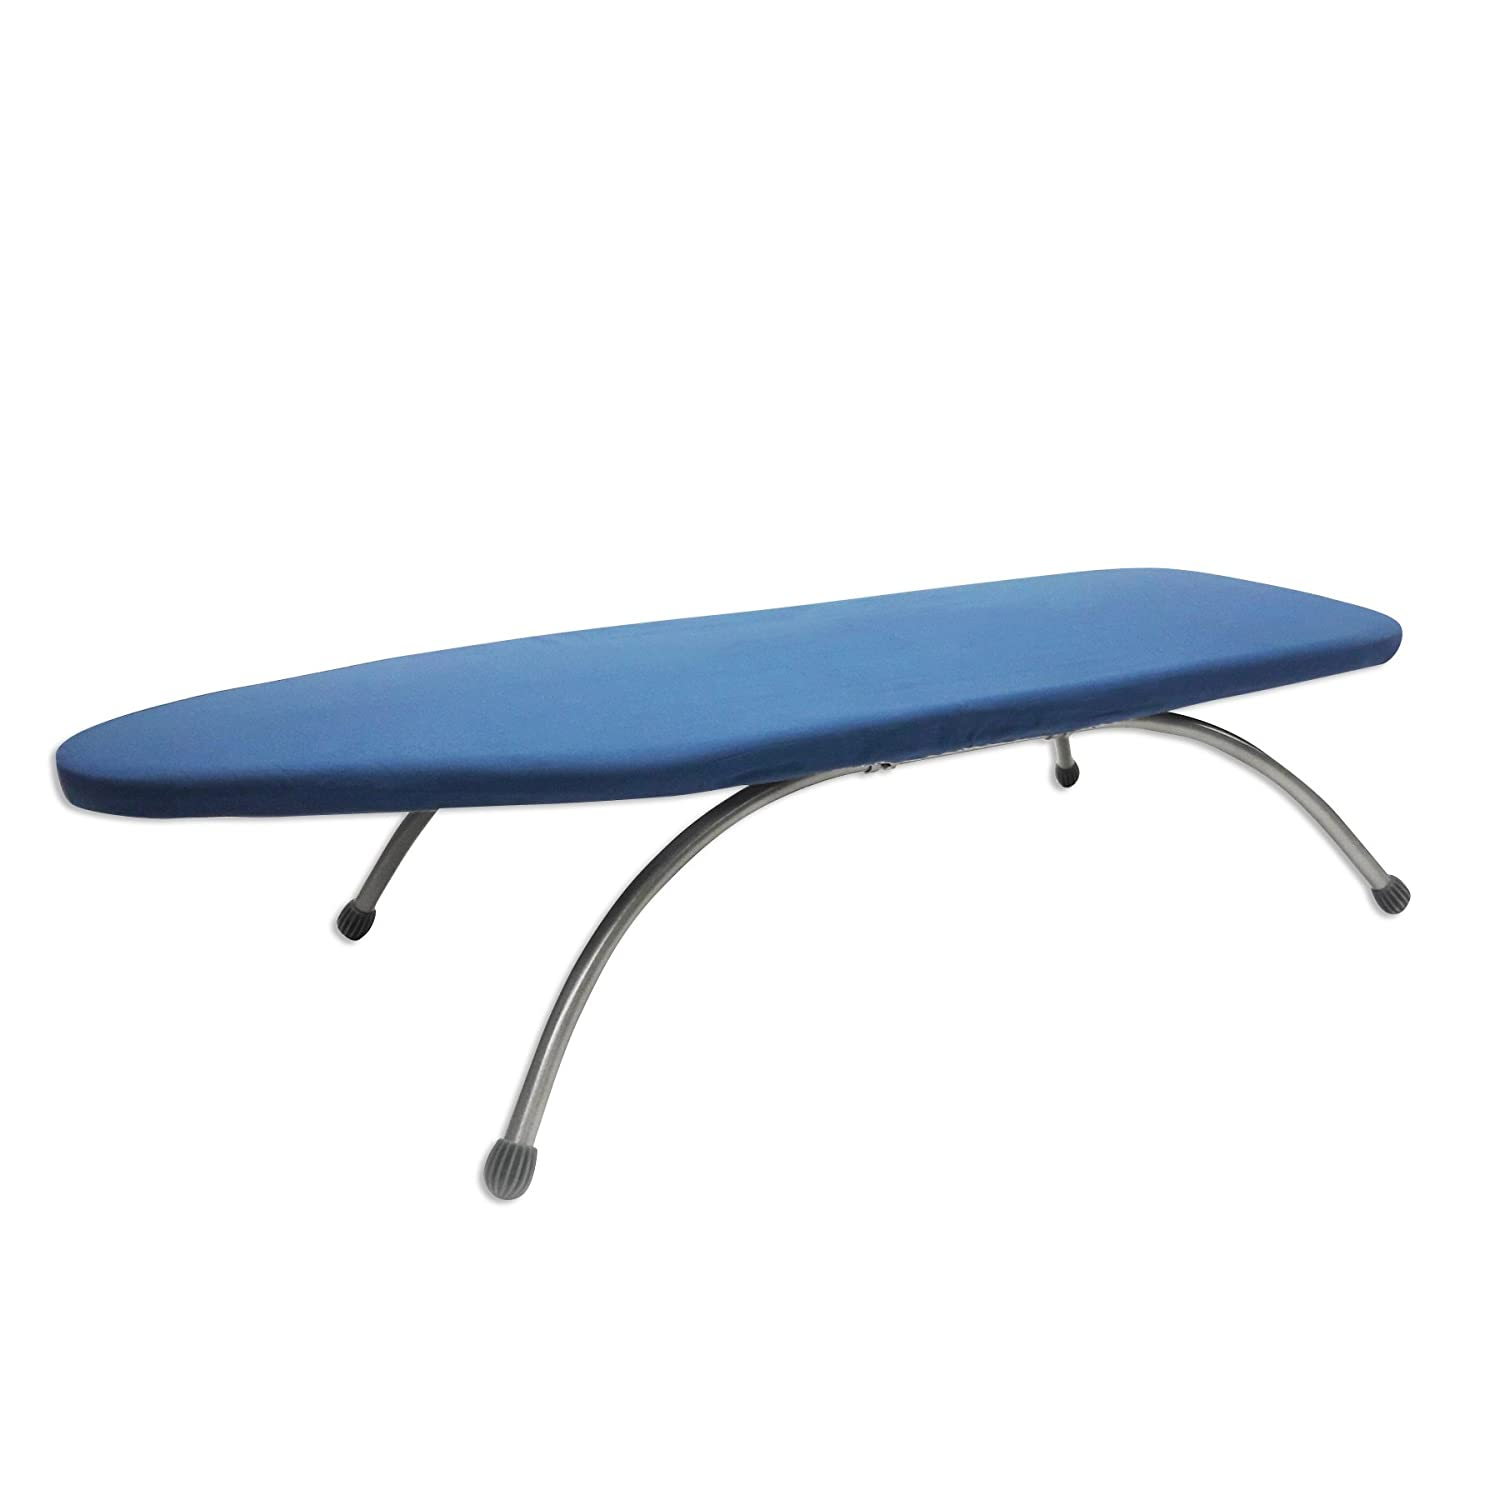 Home Products International 4350075 Anywhere Medium Size Iron Board, Blue Home Product International